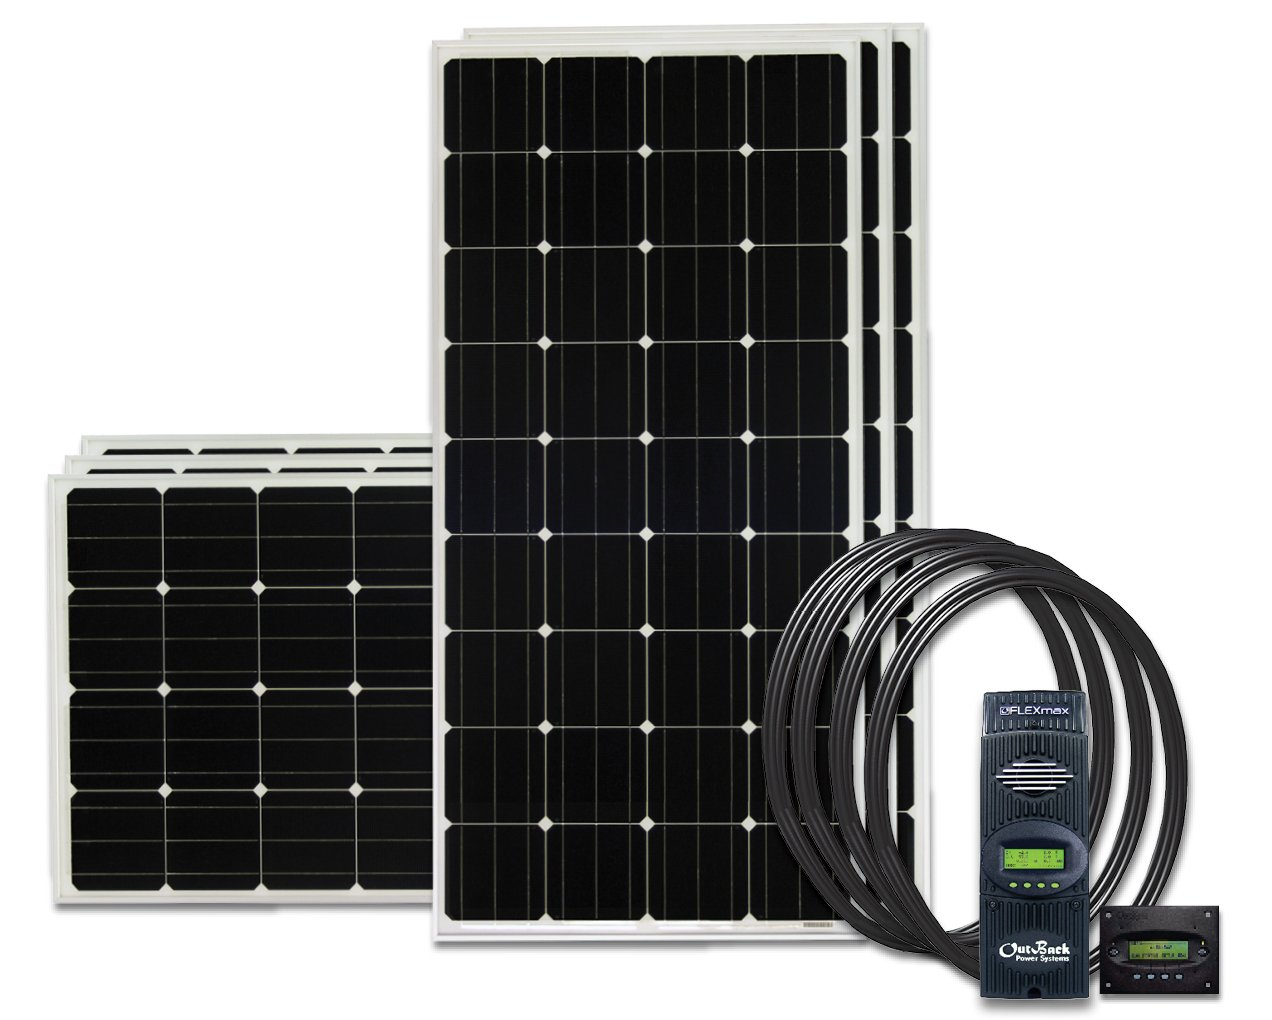 Marine solar panel installations first mate marine inc - Solar Ae 960 Watts All Electric Solar Charging Kit Automotive